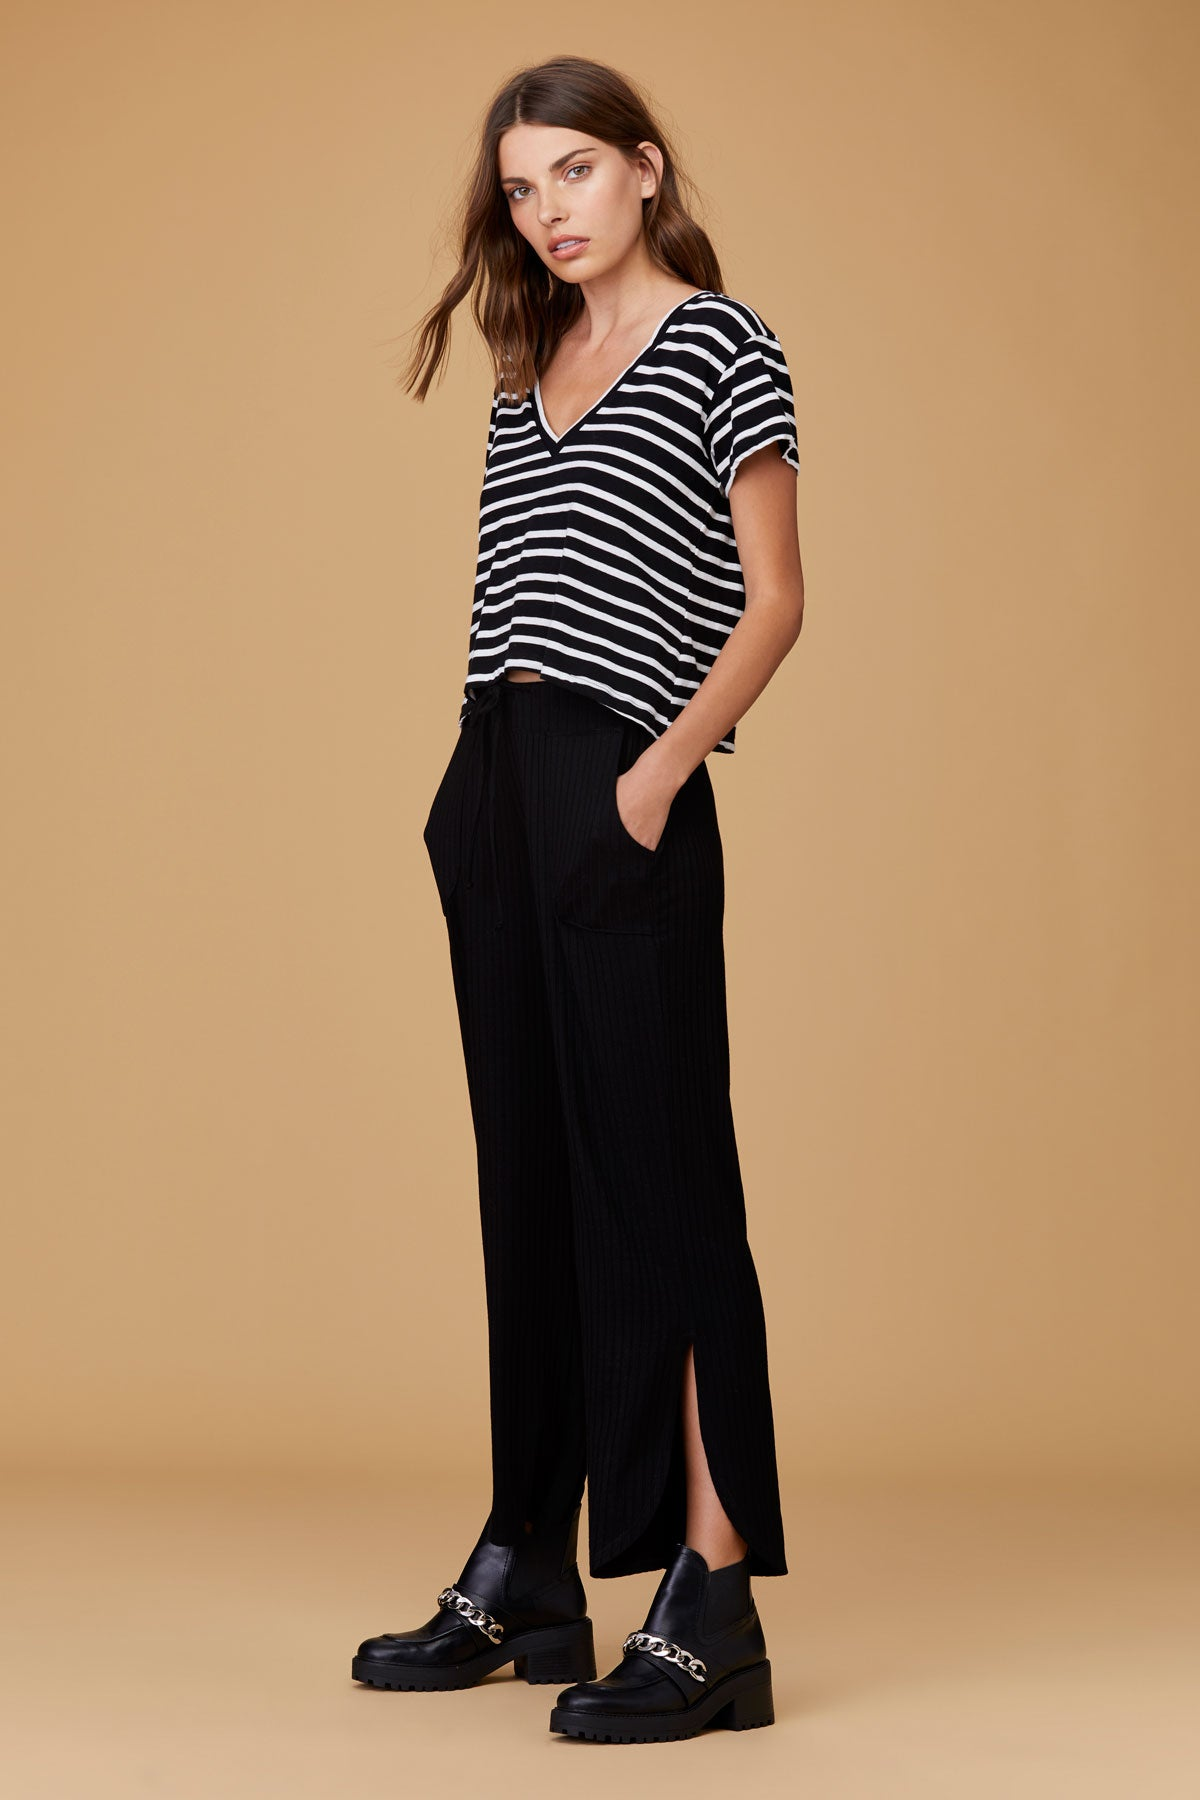 LNA Sparks V neck Tee in Black and White Honey Stripe